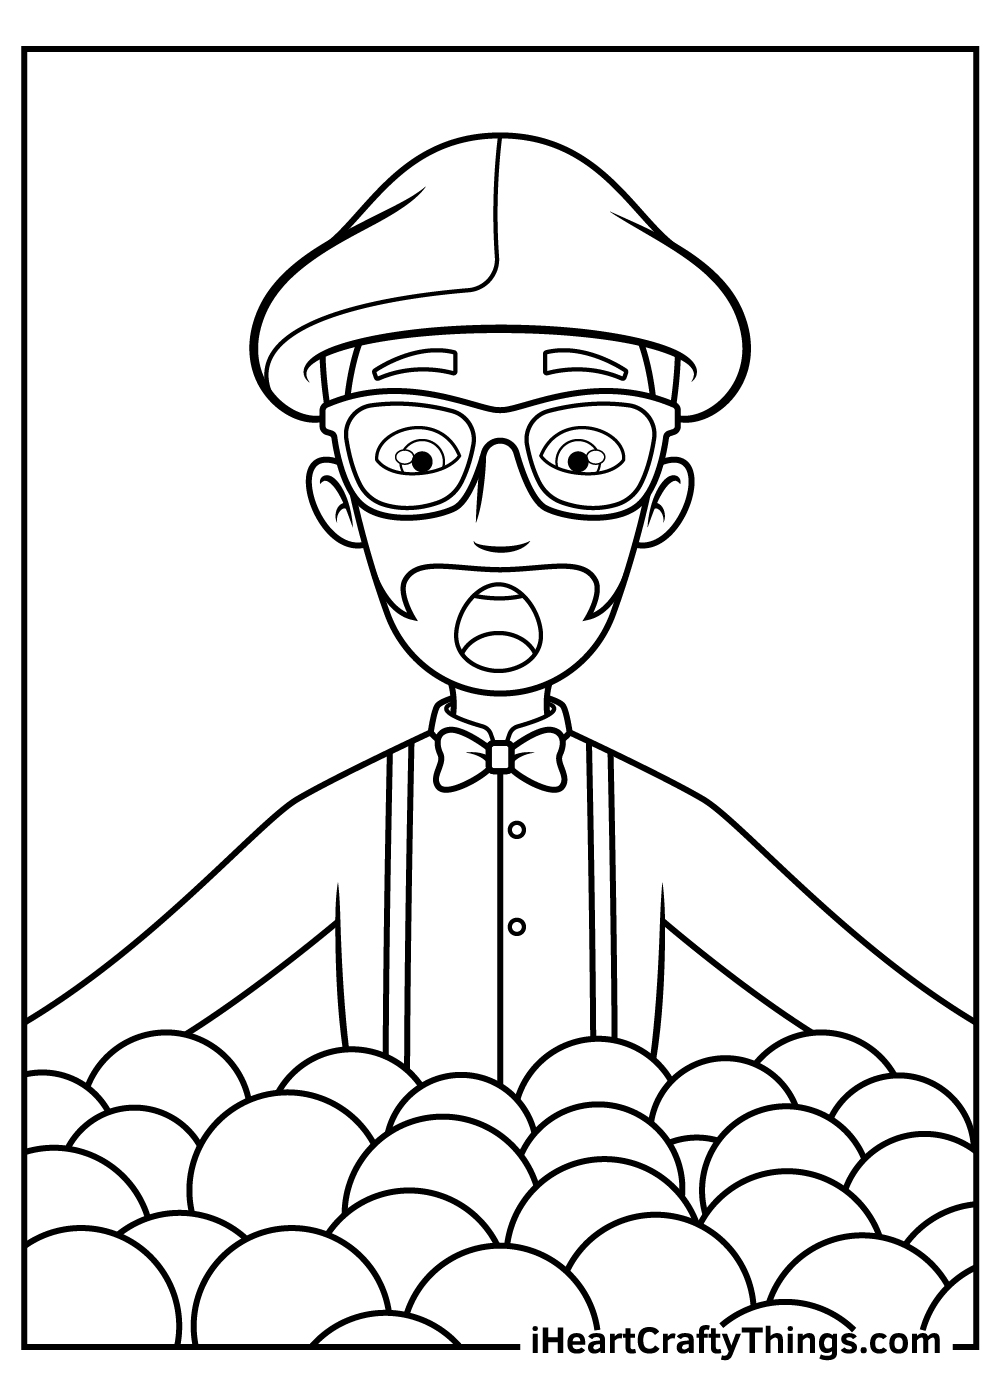 free blippi coloring pages to print out